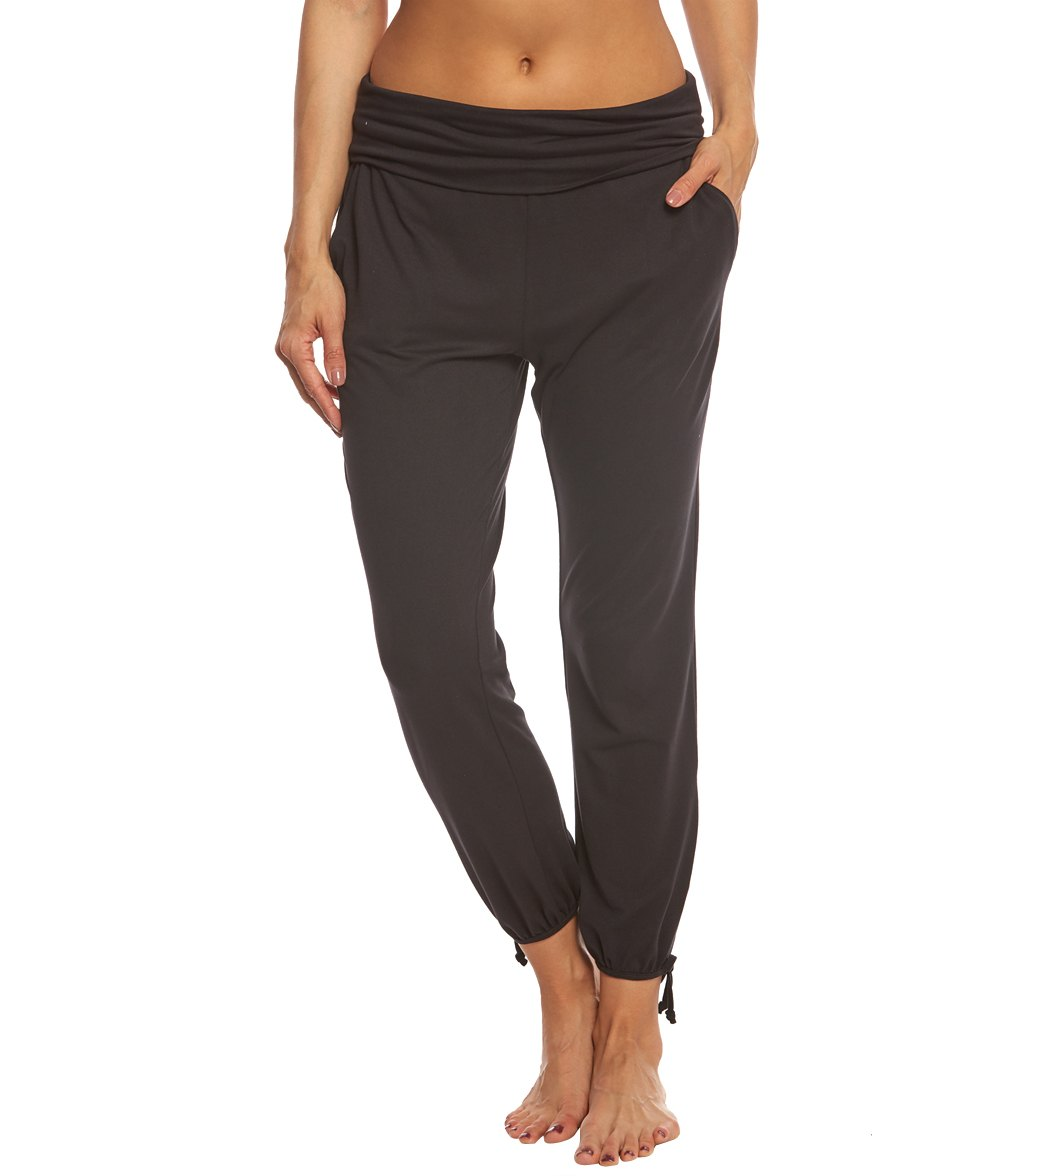 Women's Yoga Joggers & Sweatpants - Largest Selection at ...